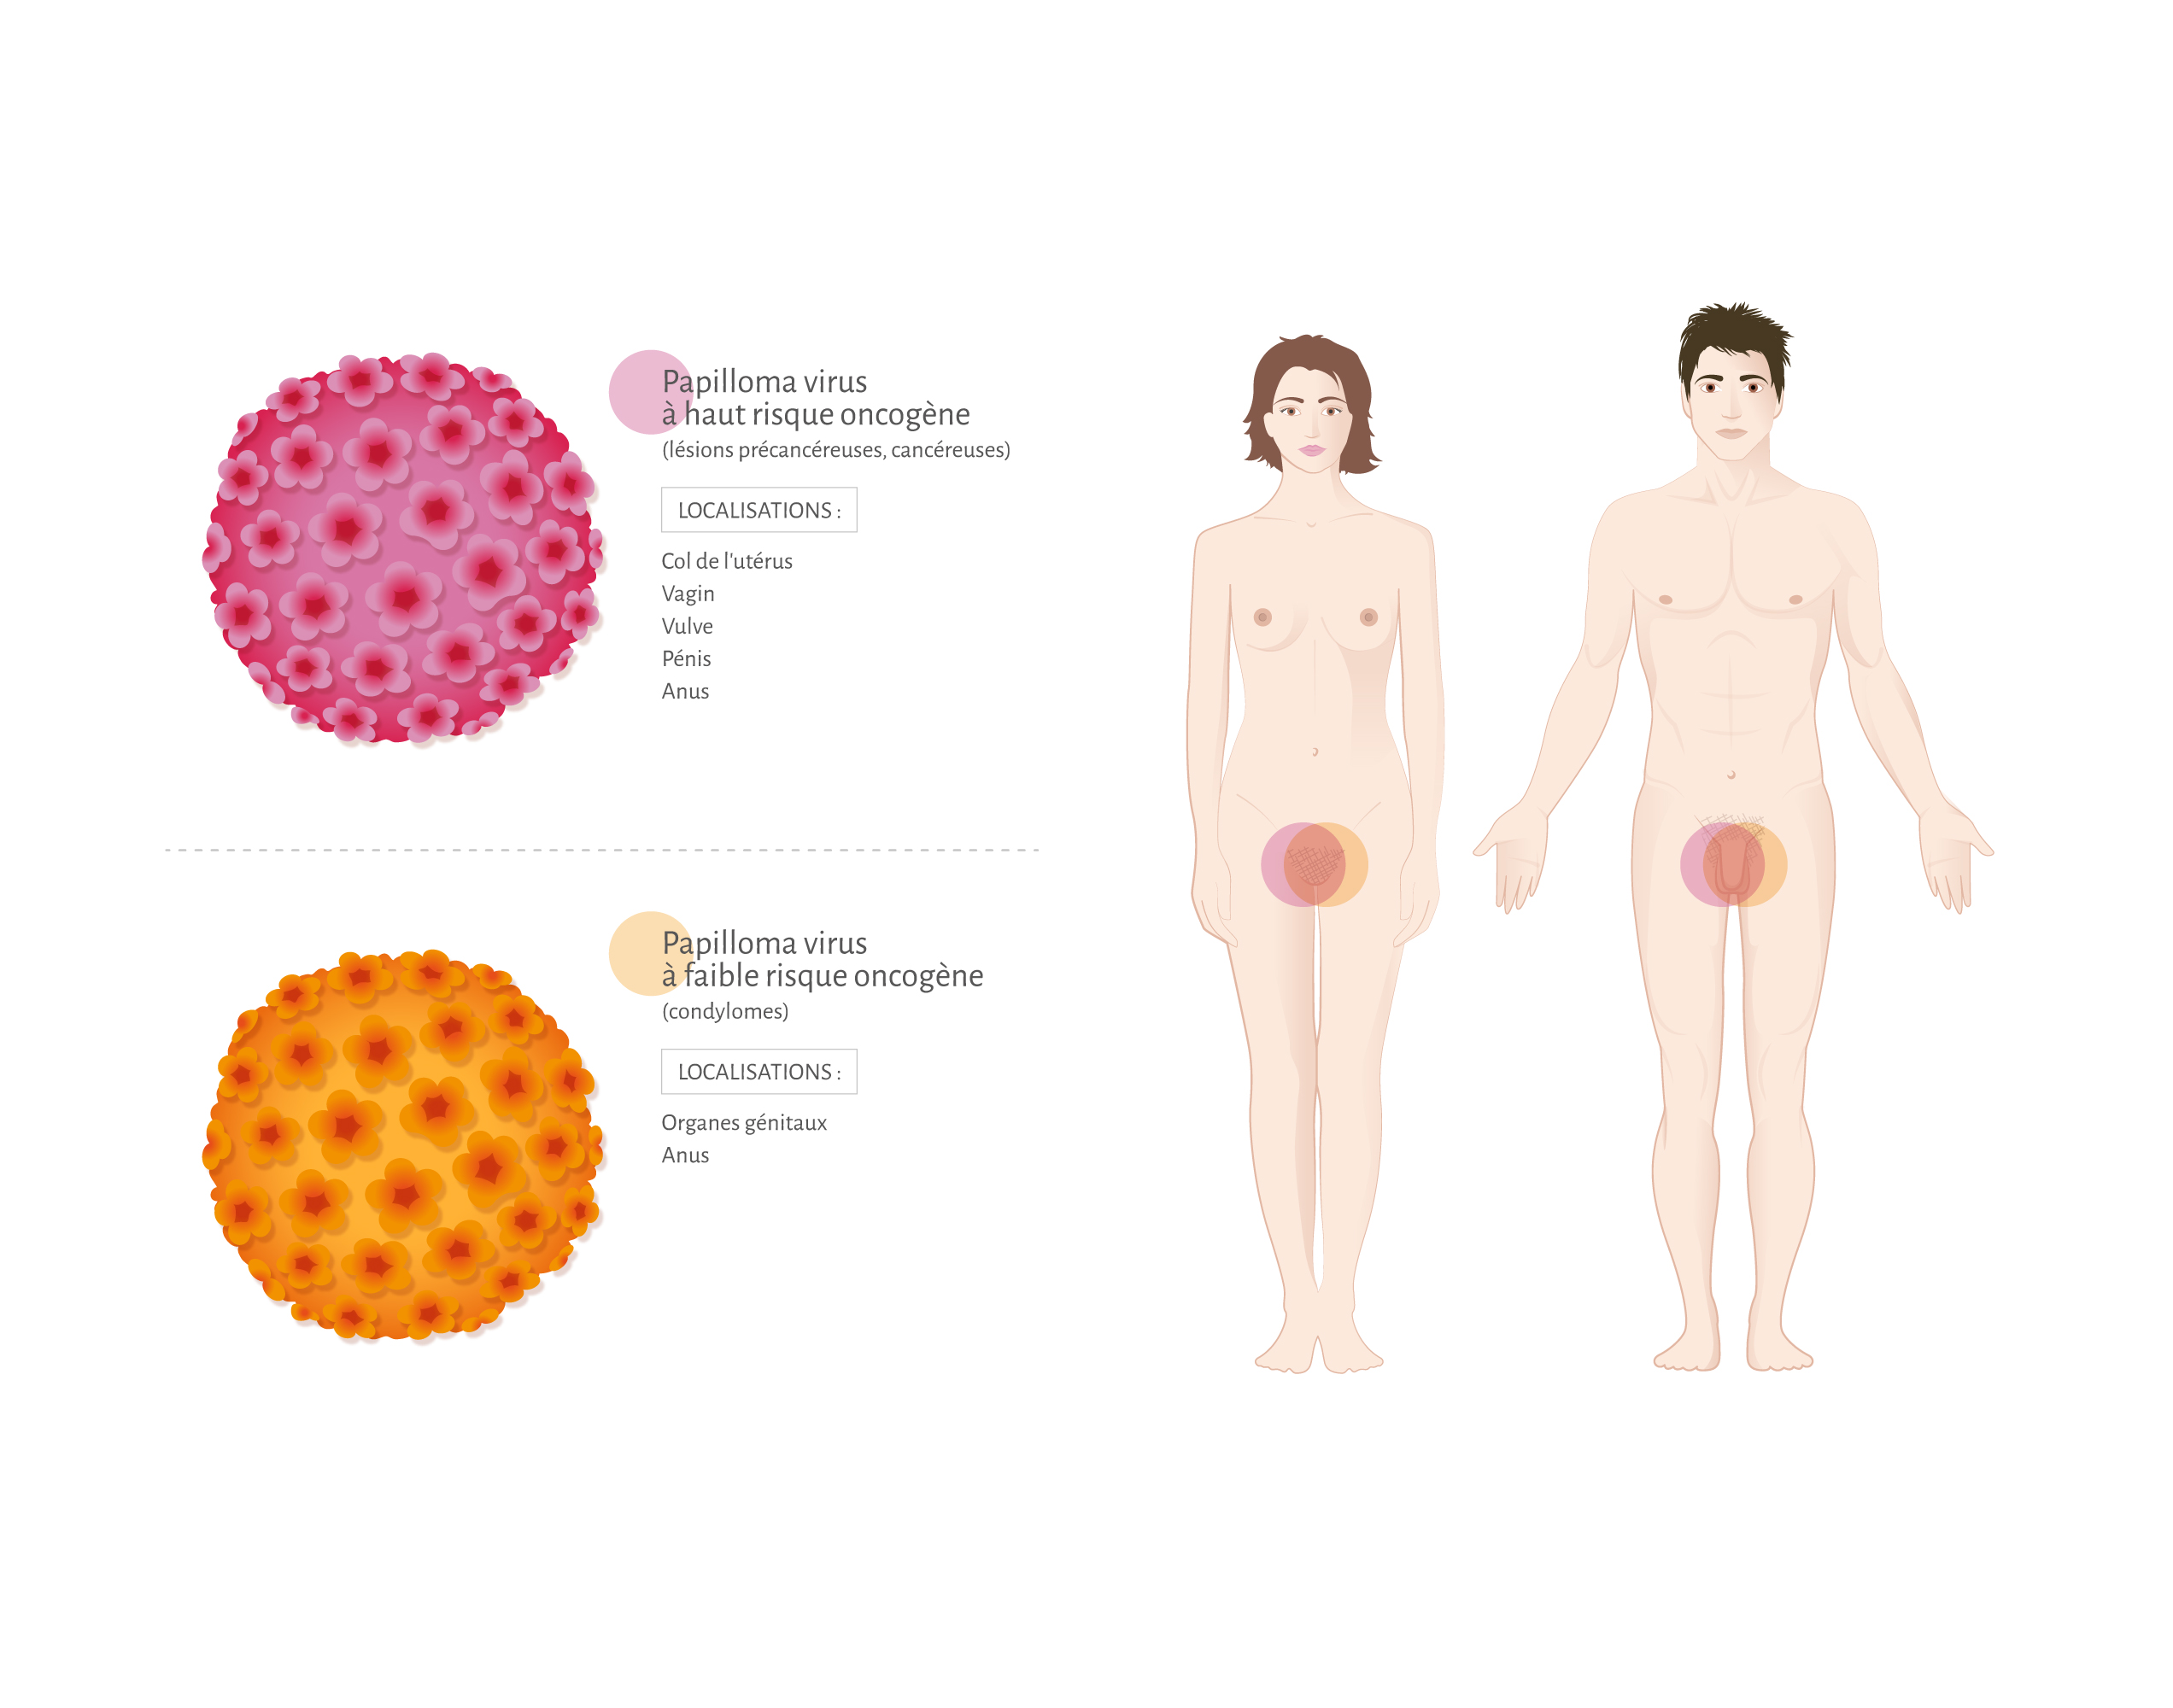 comment traiter hpv